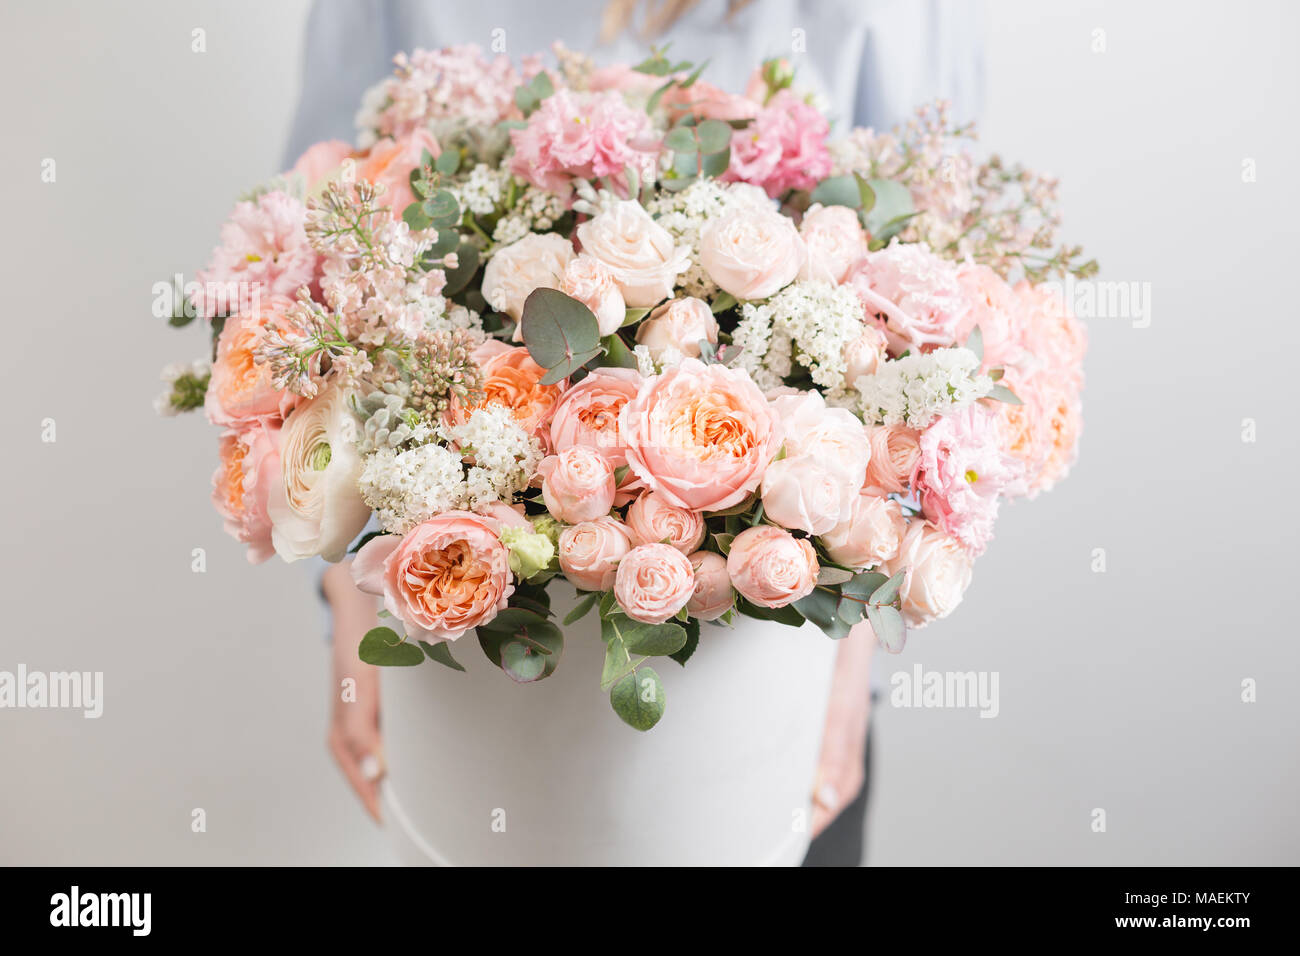 Flowers Set Beautiful Luxury Bouquet In Woman Hand The Work Of The